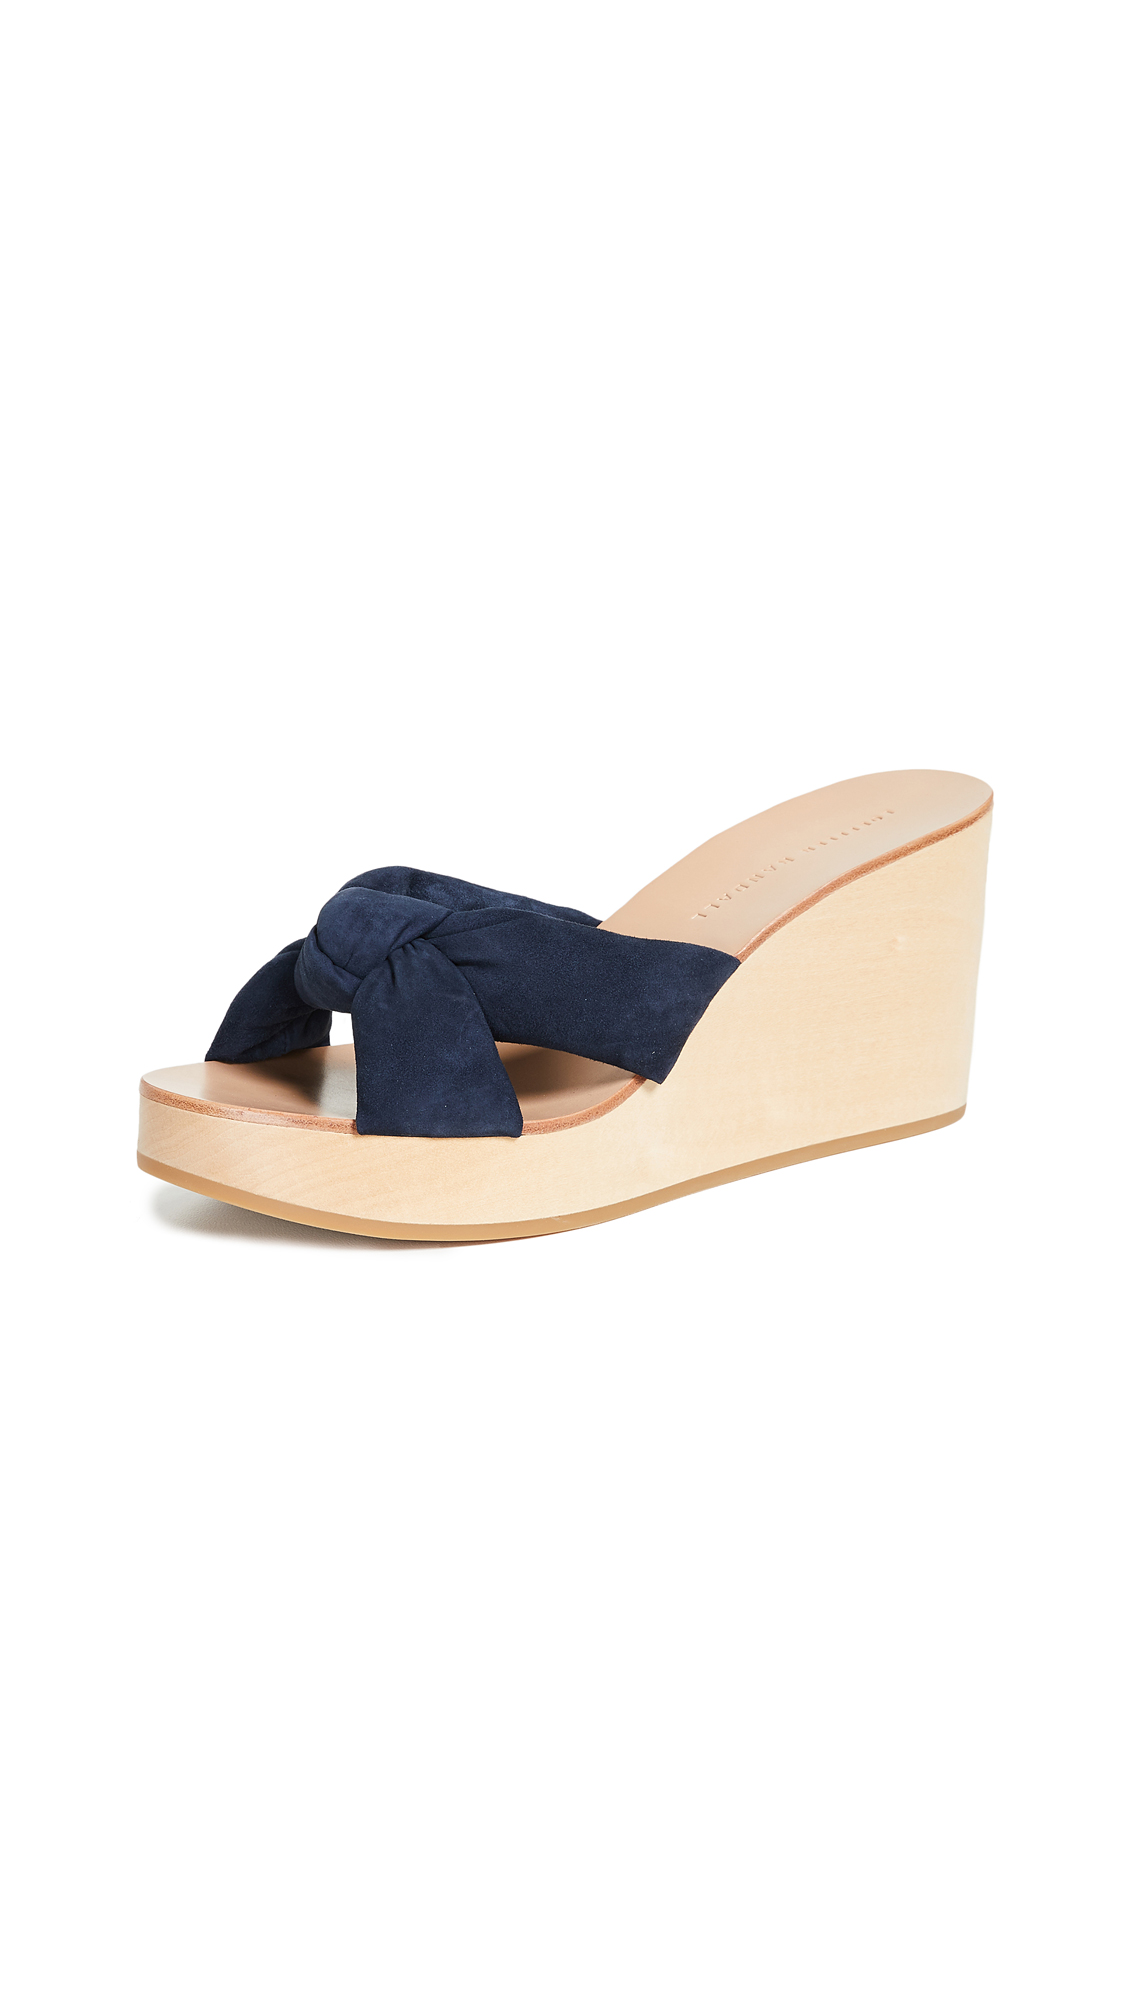 Loeffler Randall Taylor Wedge Mules - Eclipse